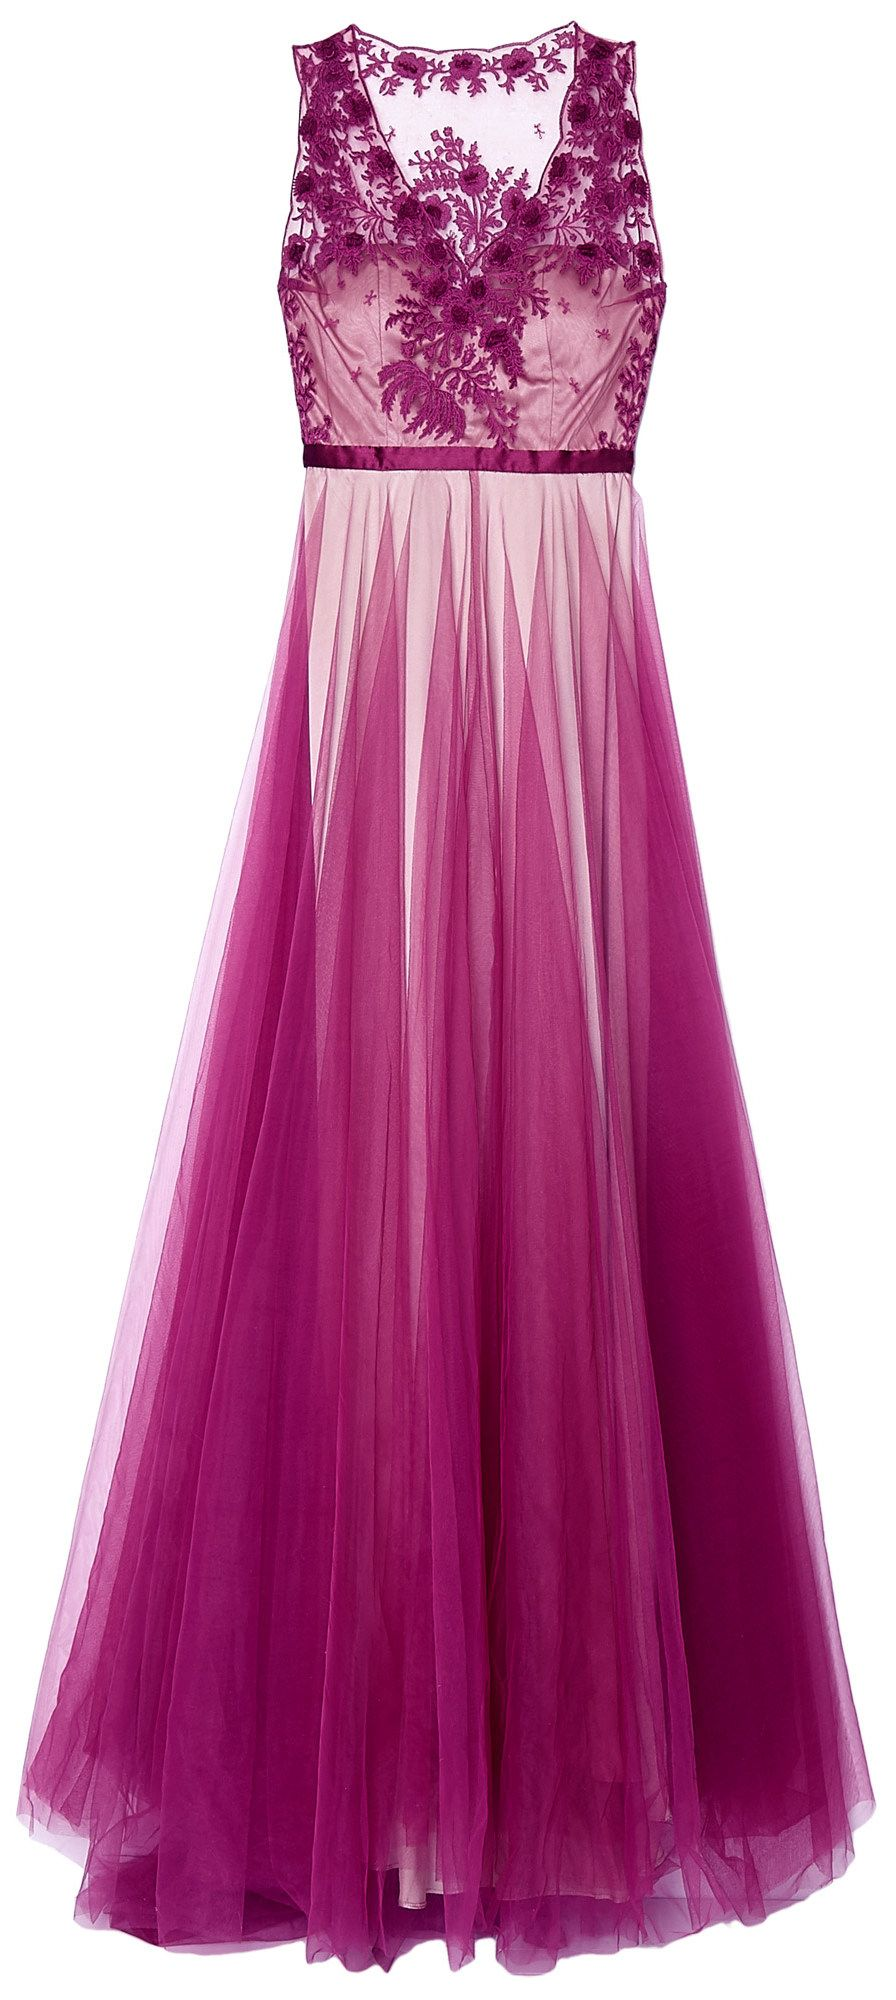 prom dress | On the catwalk | Pinterest | Vestiditos, Alta costura y ...